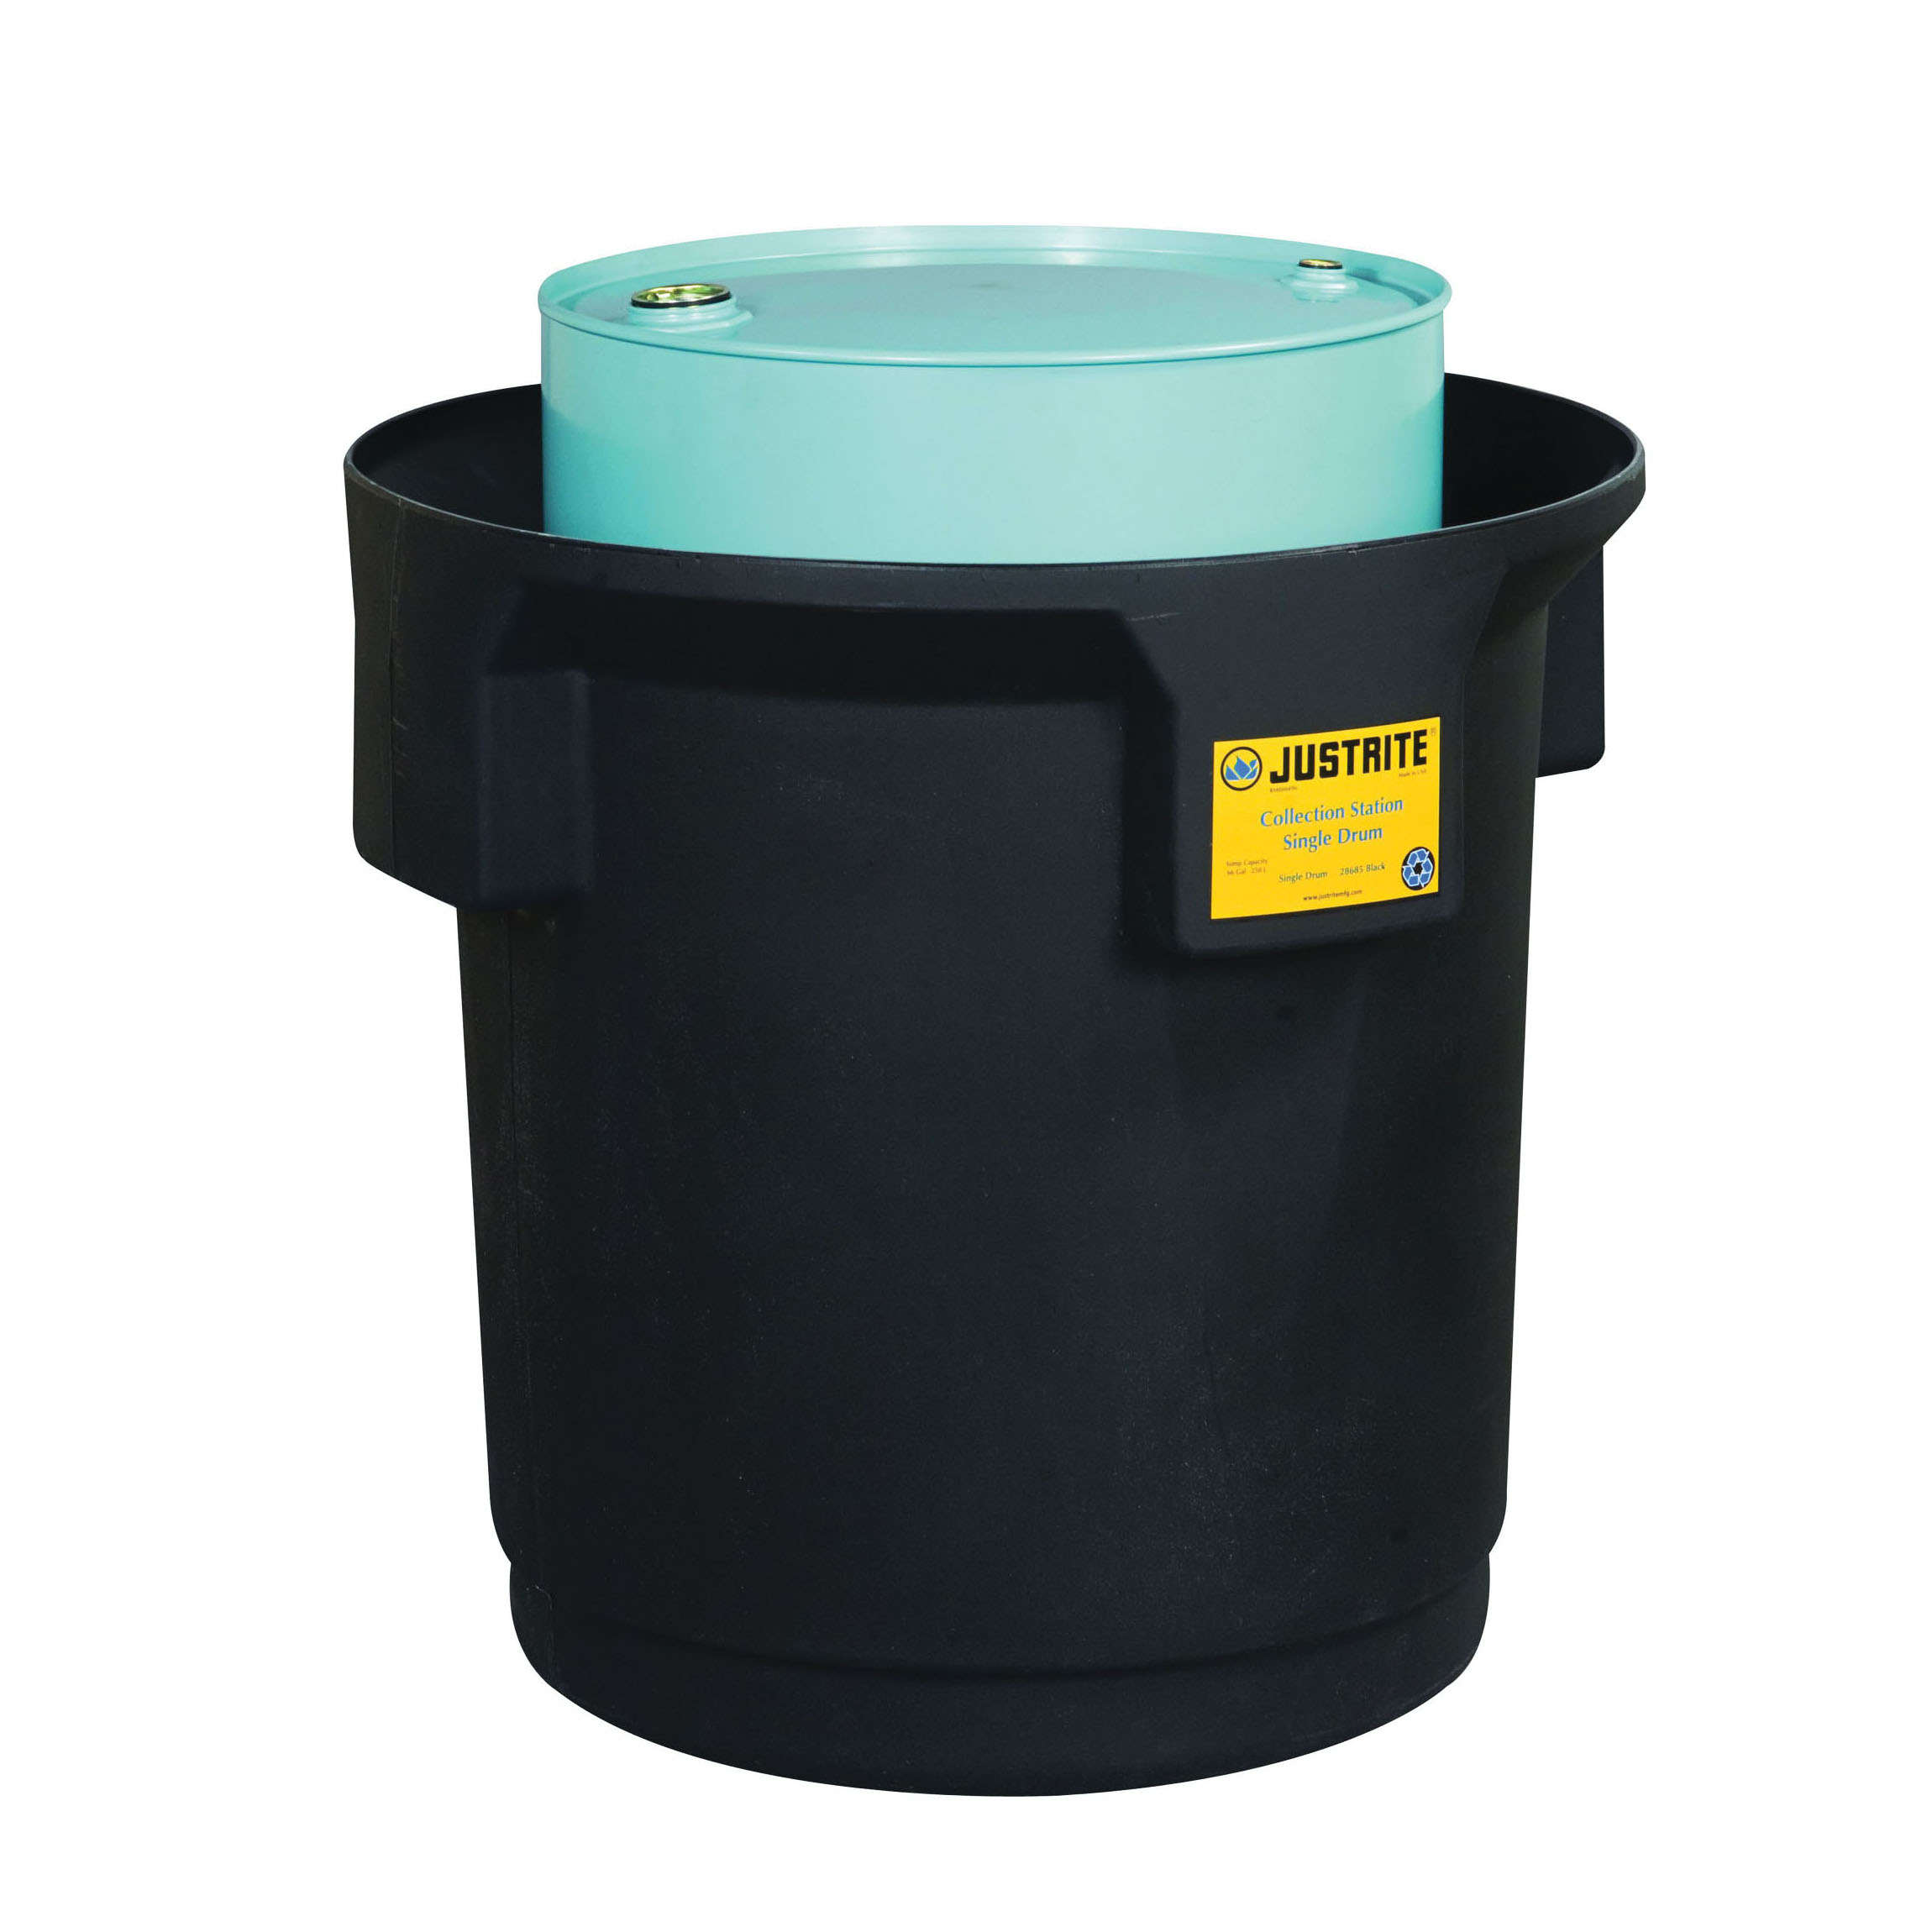 Justrite® 28685 EcoPolyBlend™ Single Drum Collection Center, 1250 lb Load, 66 gal Spill, 31 in ID x 33 in OD Dia x 31-3/4 in H, Black